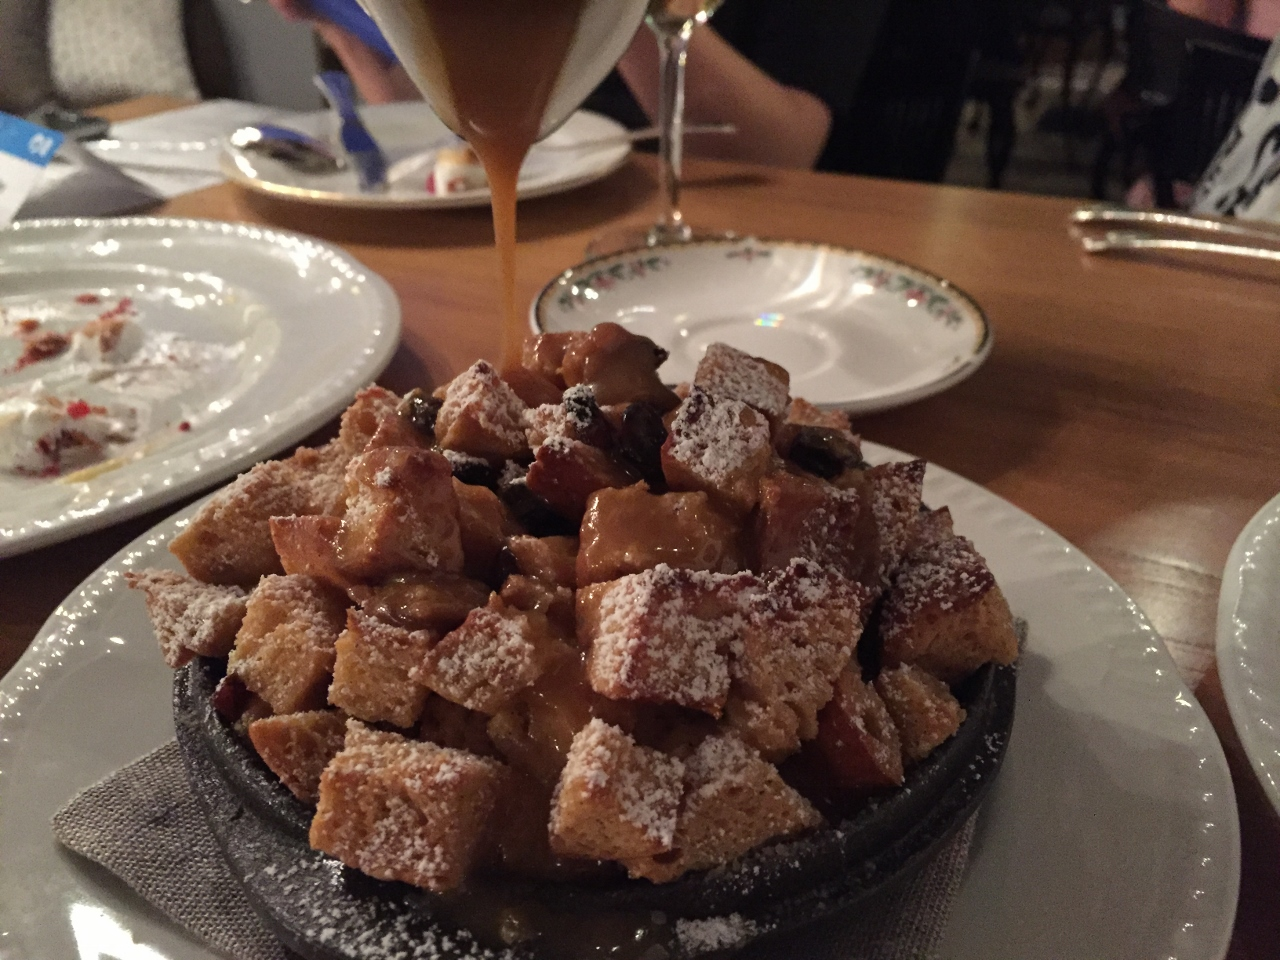 The Bread & Butter Pudding from SHARE by Curtis Stone.